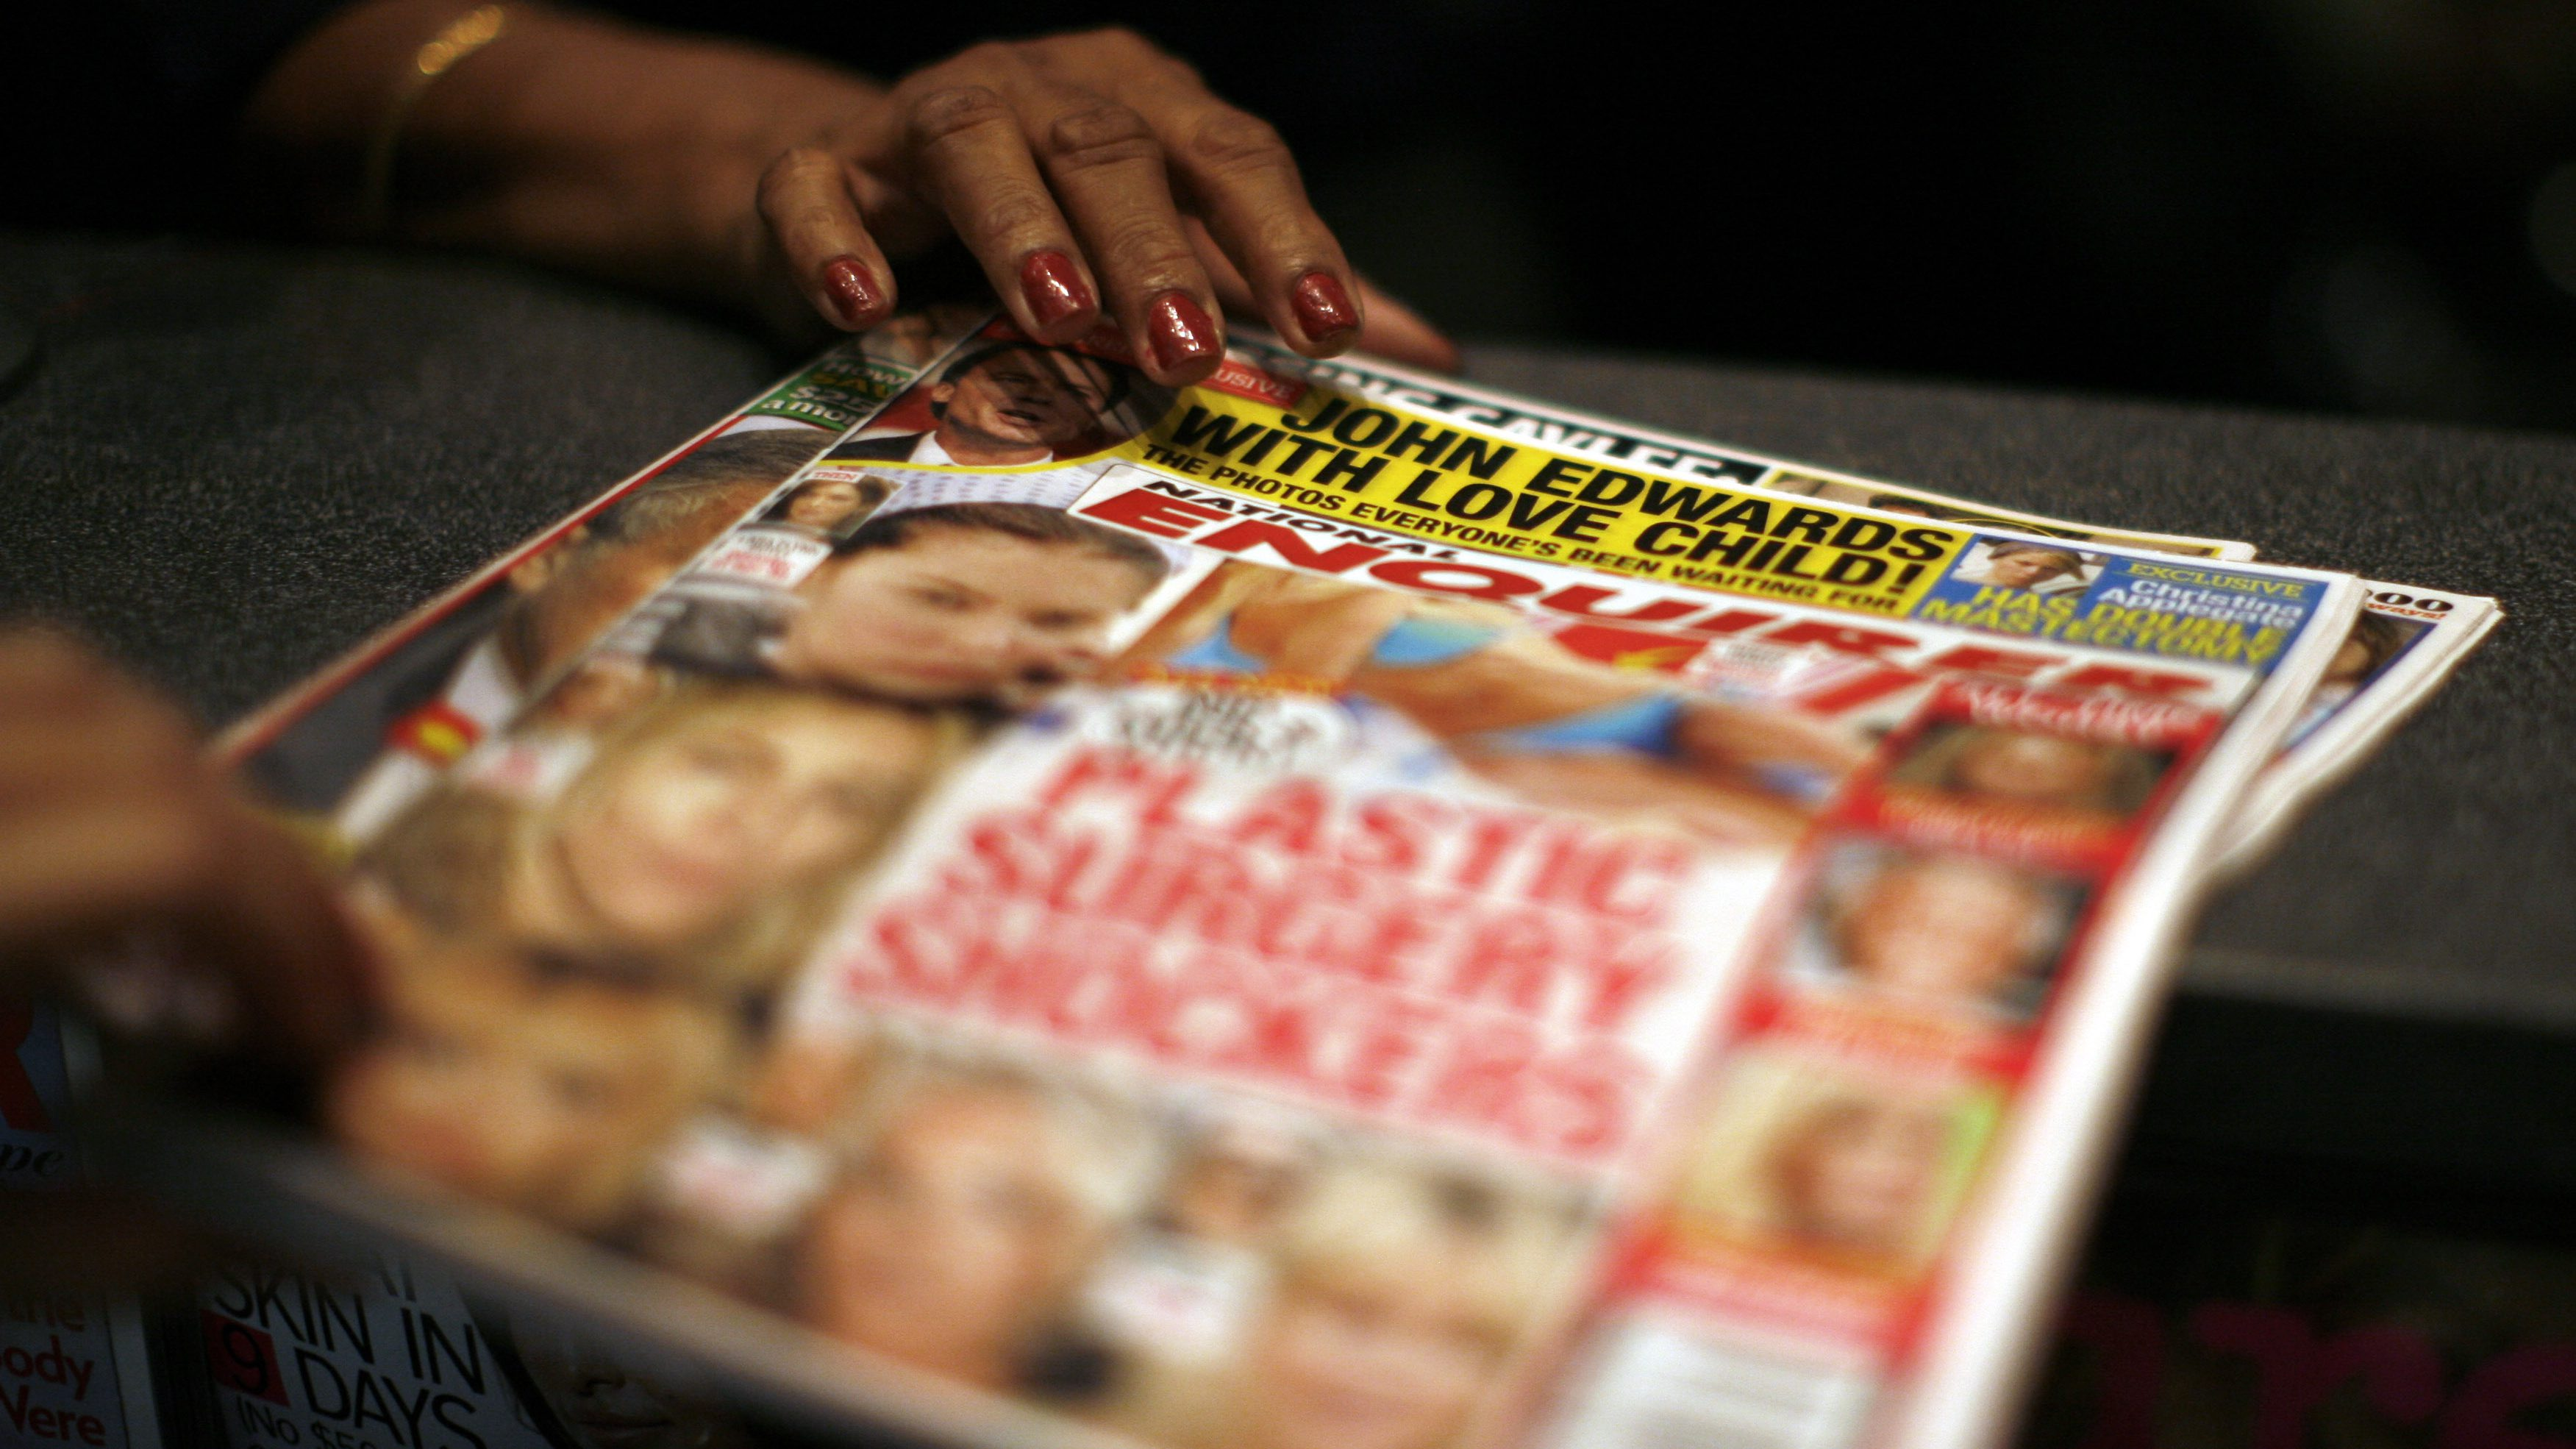 A commuter purchases a copy of the National Enquirer in a newsstand in New York's Penn Station Friday Aug. 8, 2008. The tabloid first reported Former Democratic presidential candidate John Edwards having an extramarital affair while his wife was battling cancer. (AP Photo/Ed Ou)